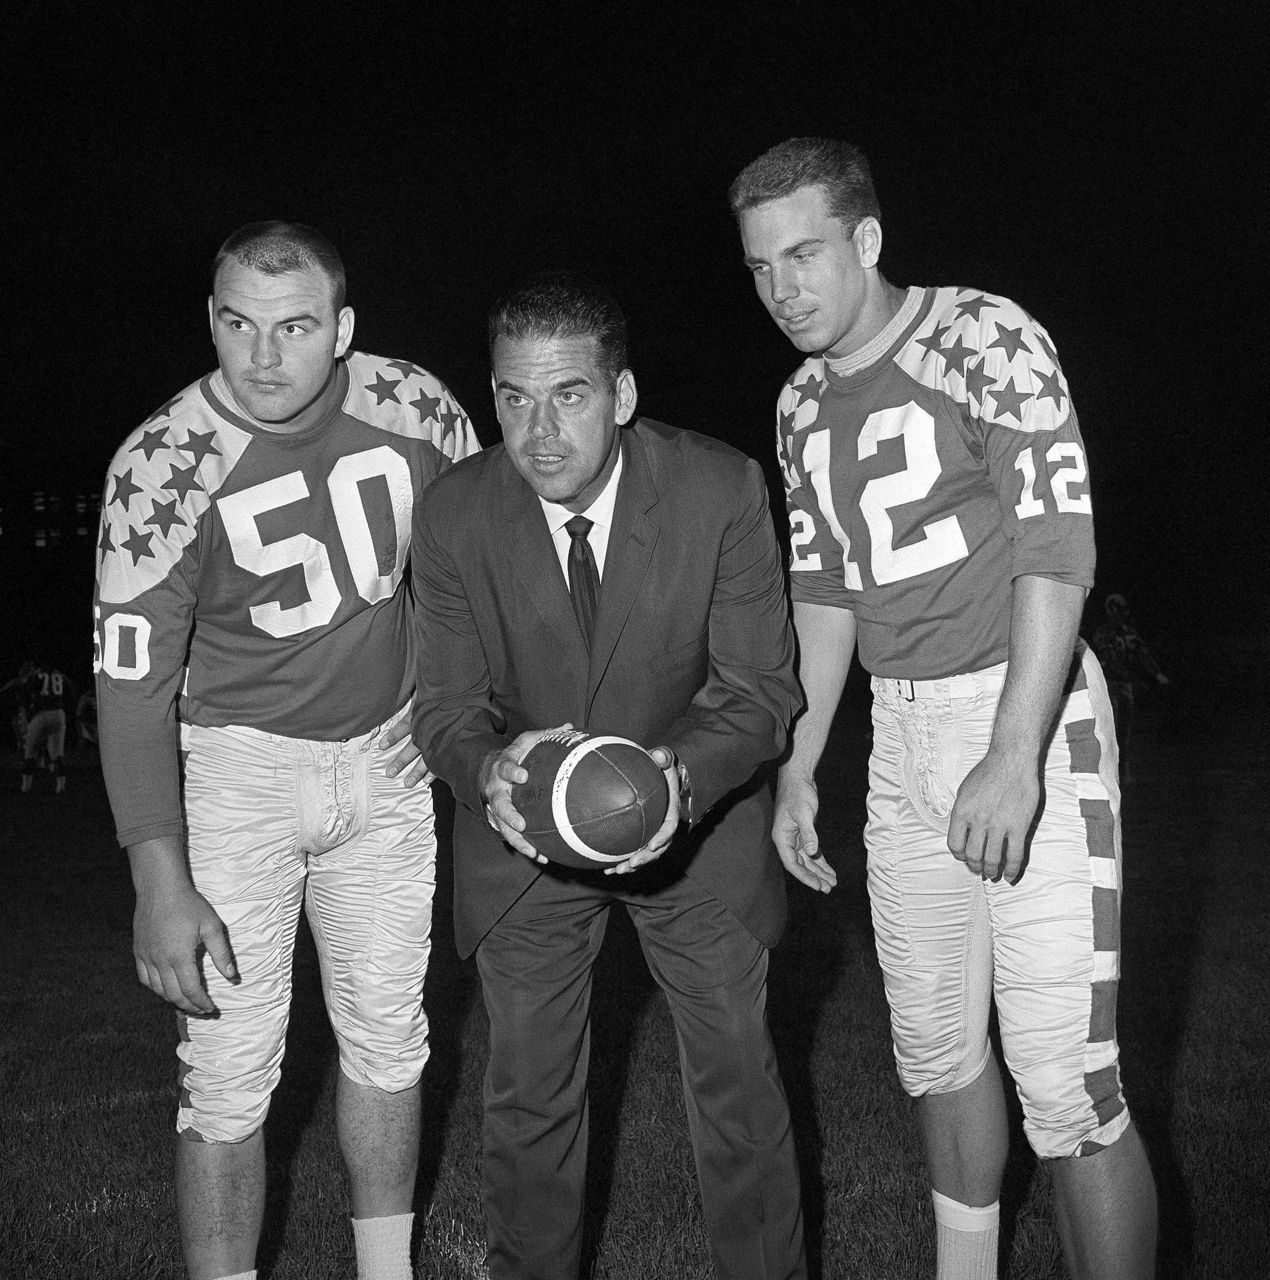 Nfl At 100 How College Football Became Pipeline To Nfl